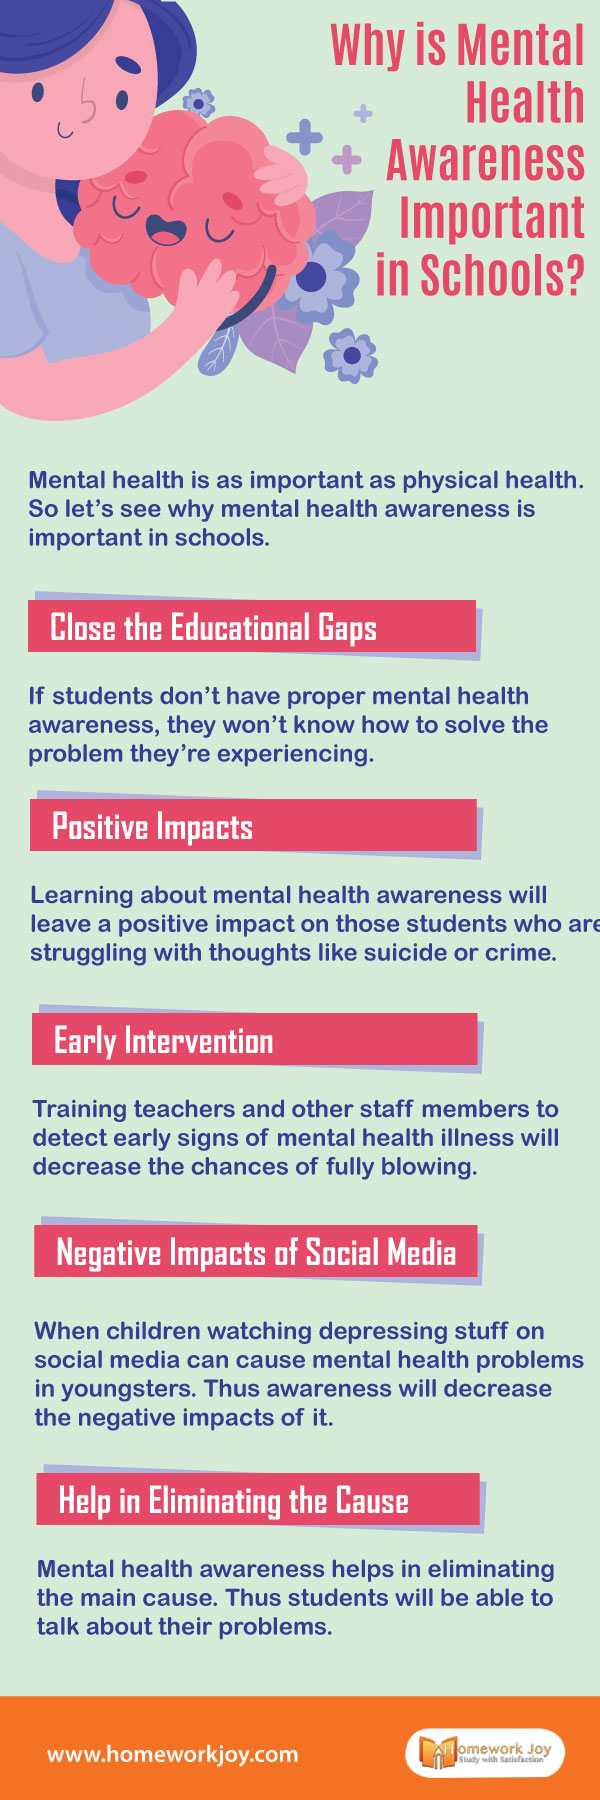 Why is Mental Health Awareness important in Schools